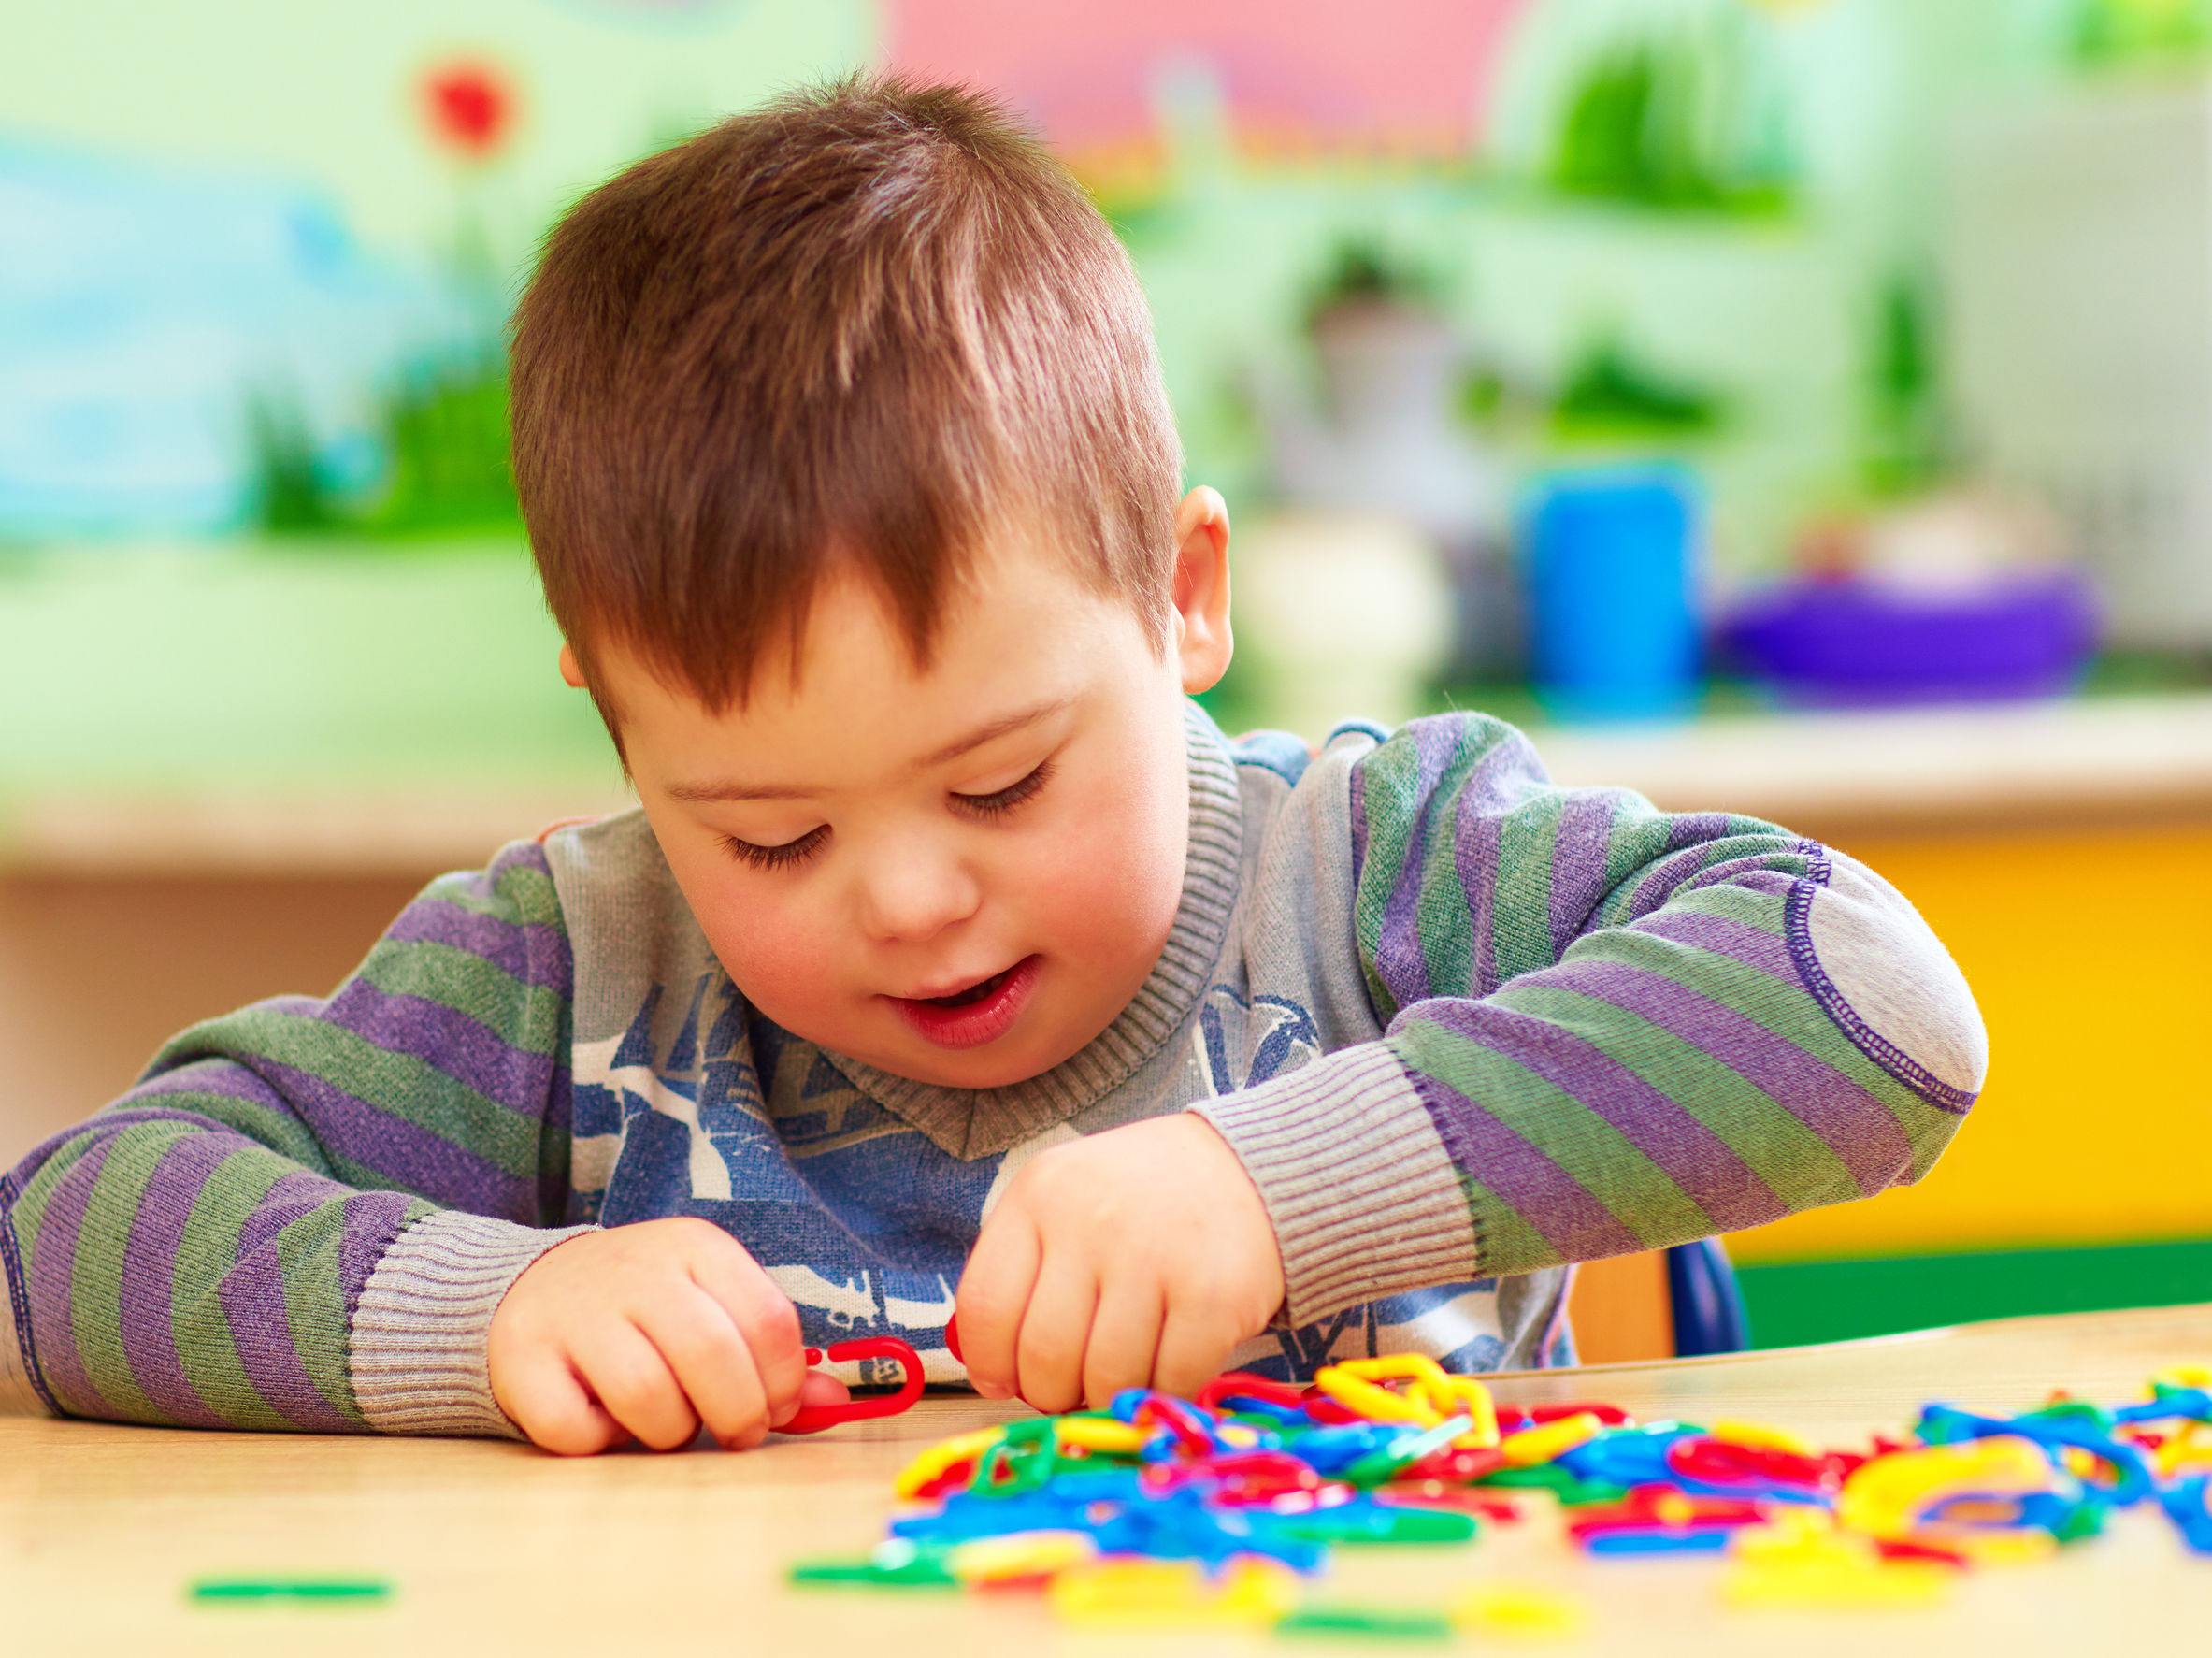 10 Fun Toys and Games To Build Fine Motor Skills